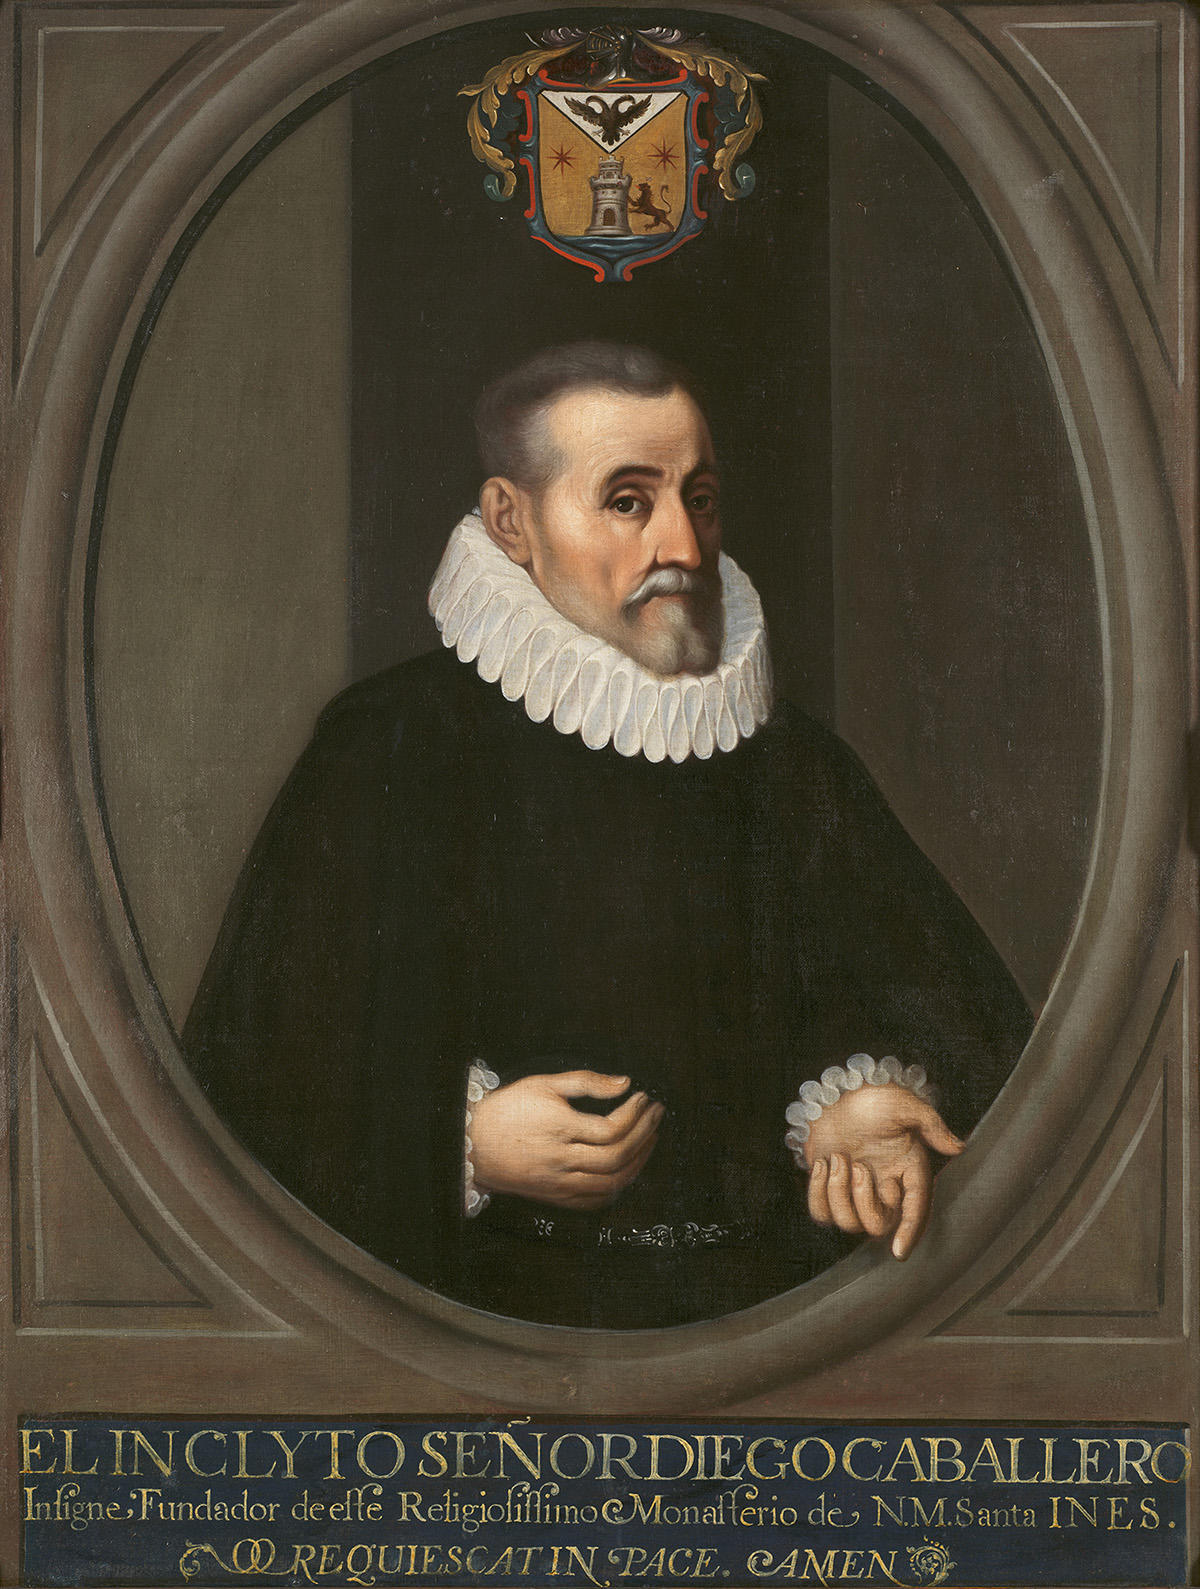 Oil painting of Don Diego Caballero